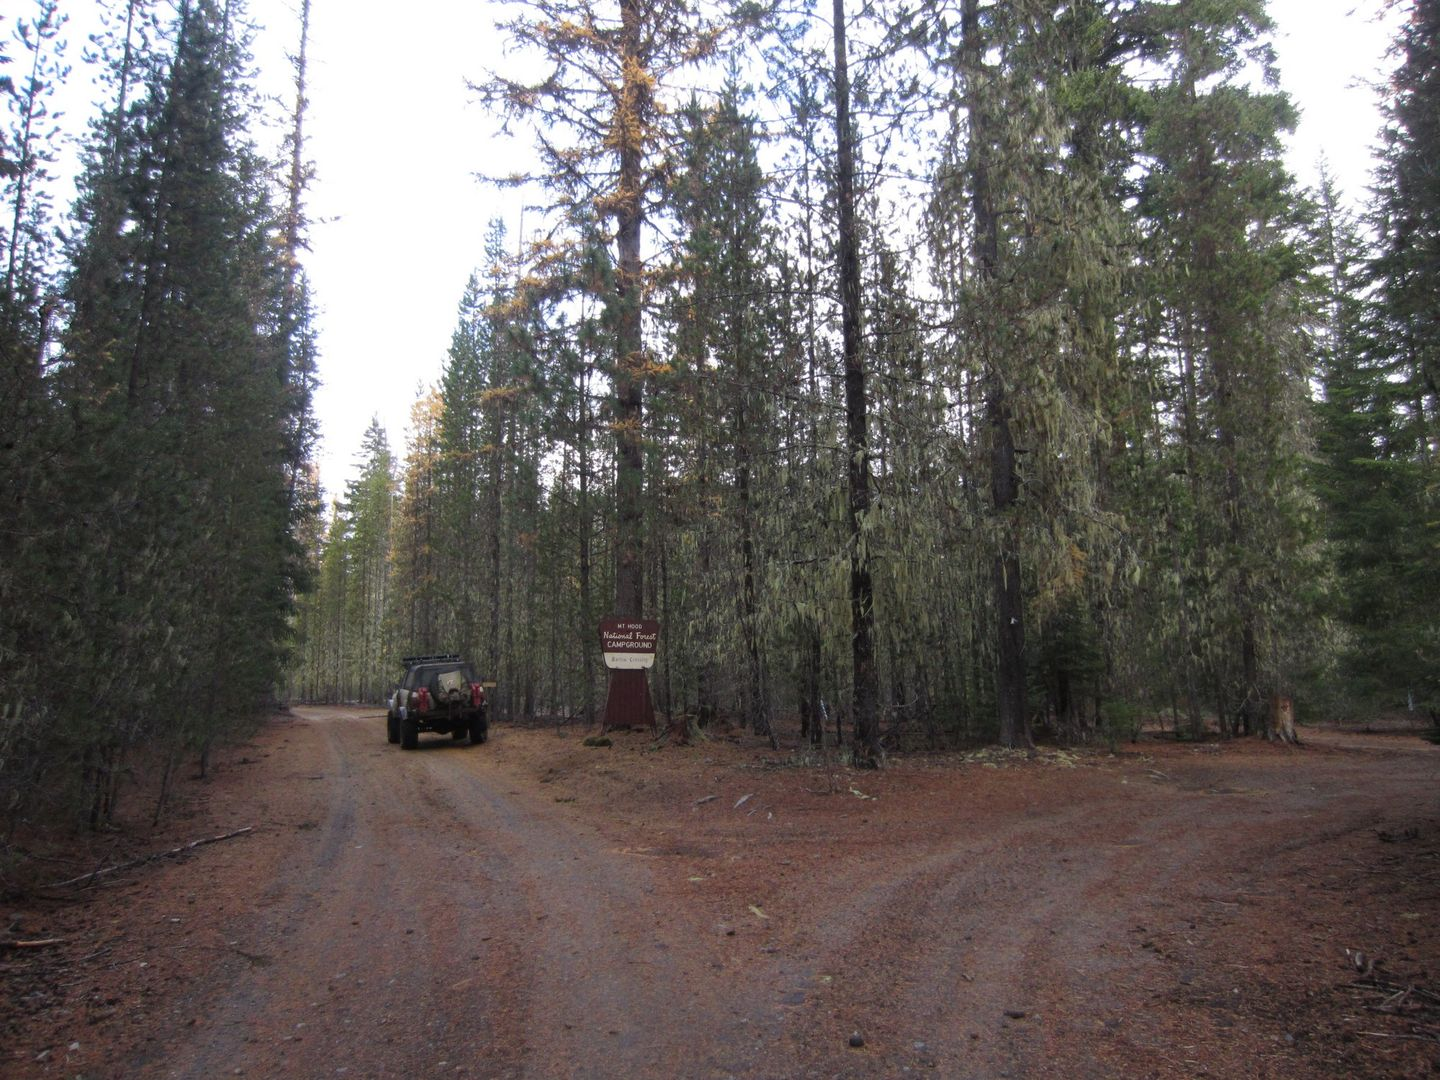 Barlow Trail - Waypoint 32: Barlow Crossing Campground